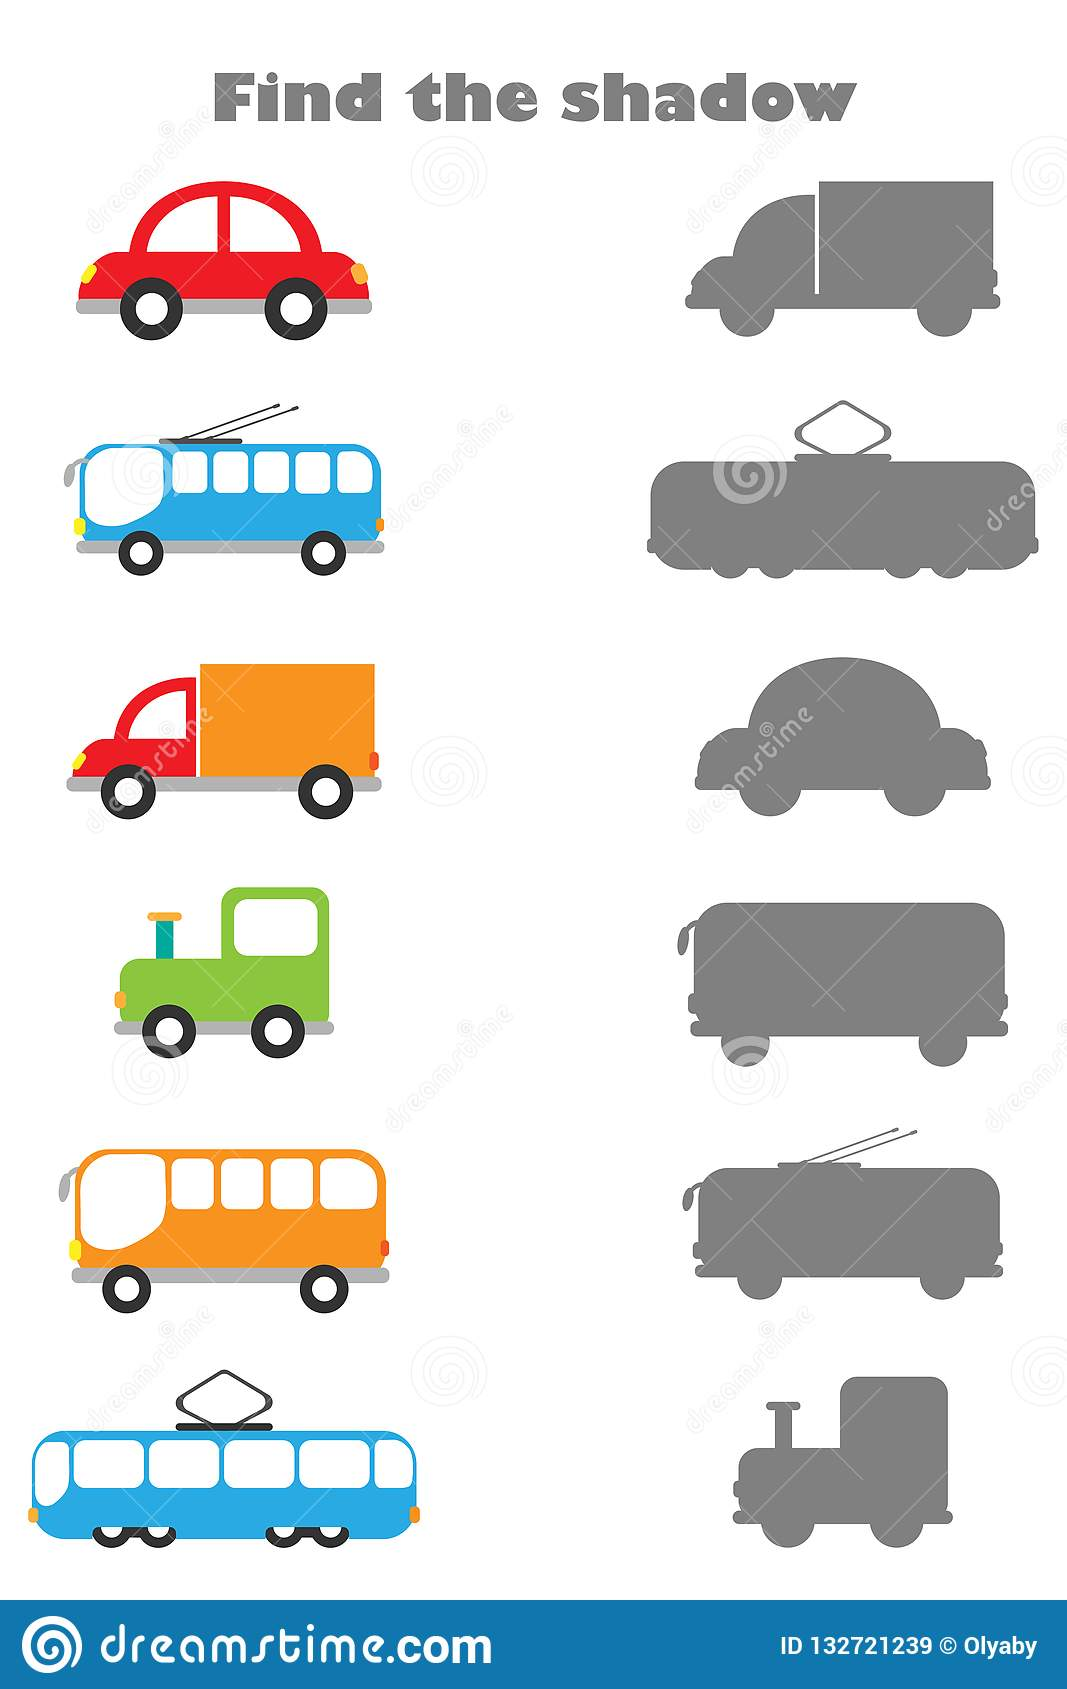 Find The Shadow Game With Pictures Of Transport For